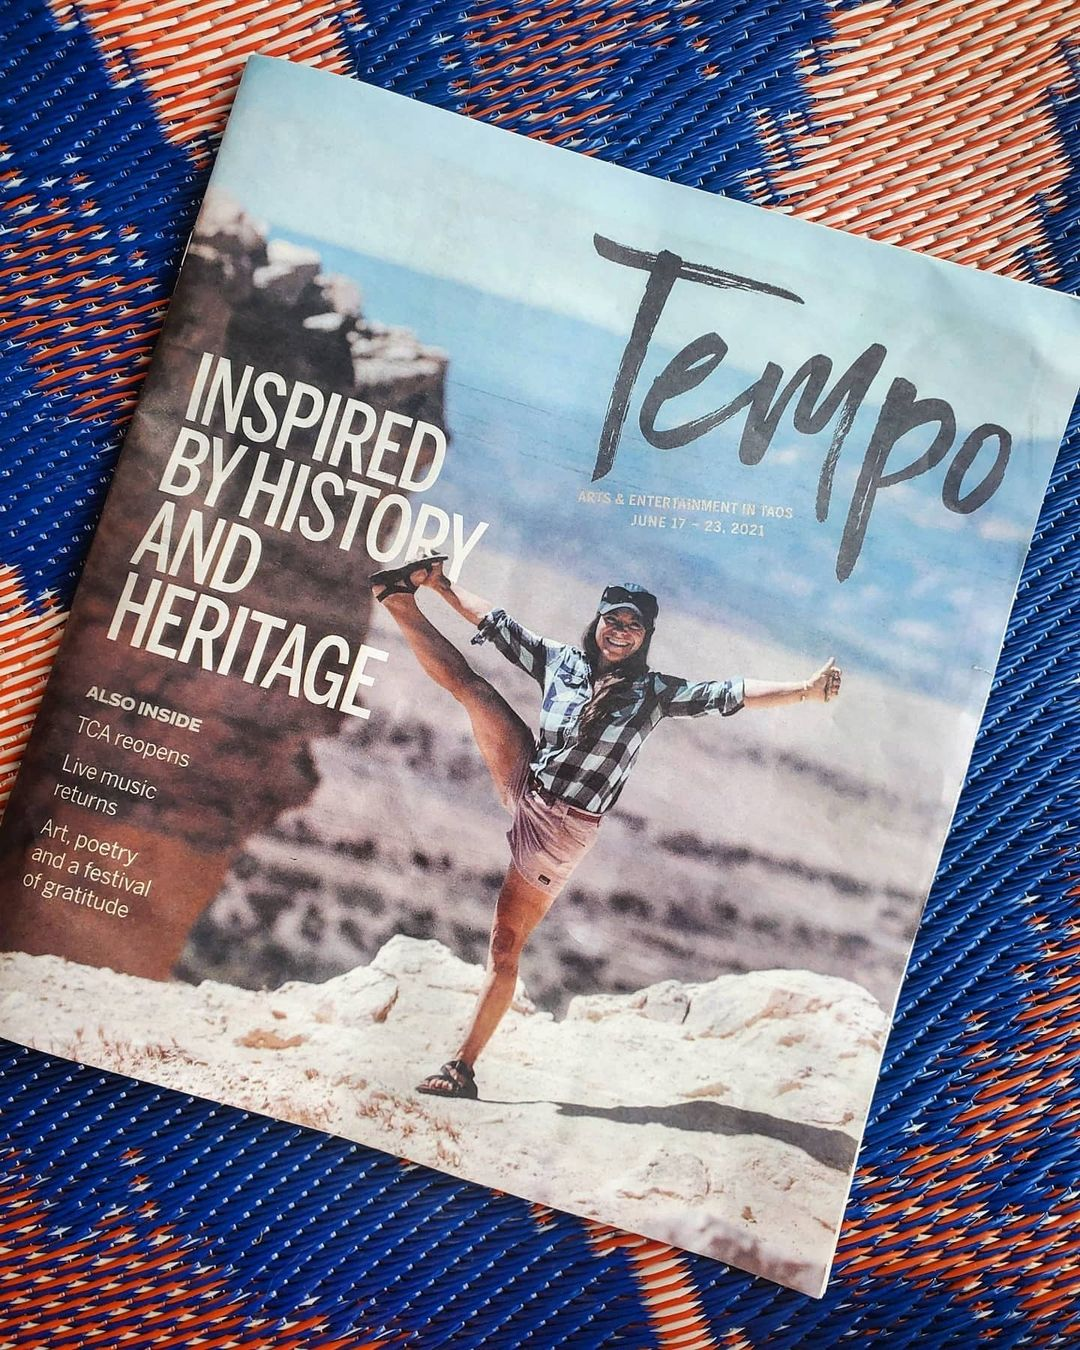 Inspired by history and heritage: Angelisa Espinoza Murray takes on high country | Tempo June 2021